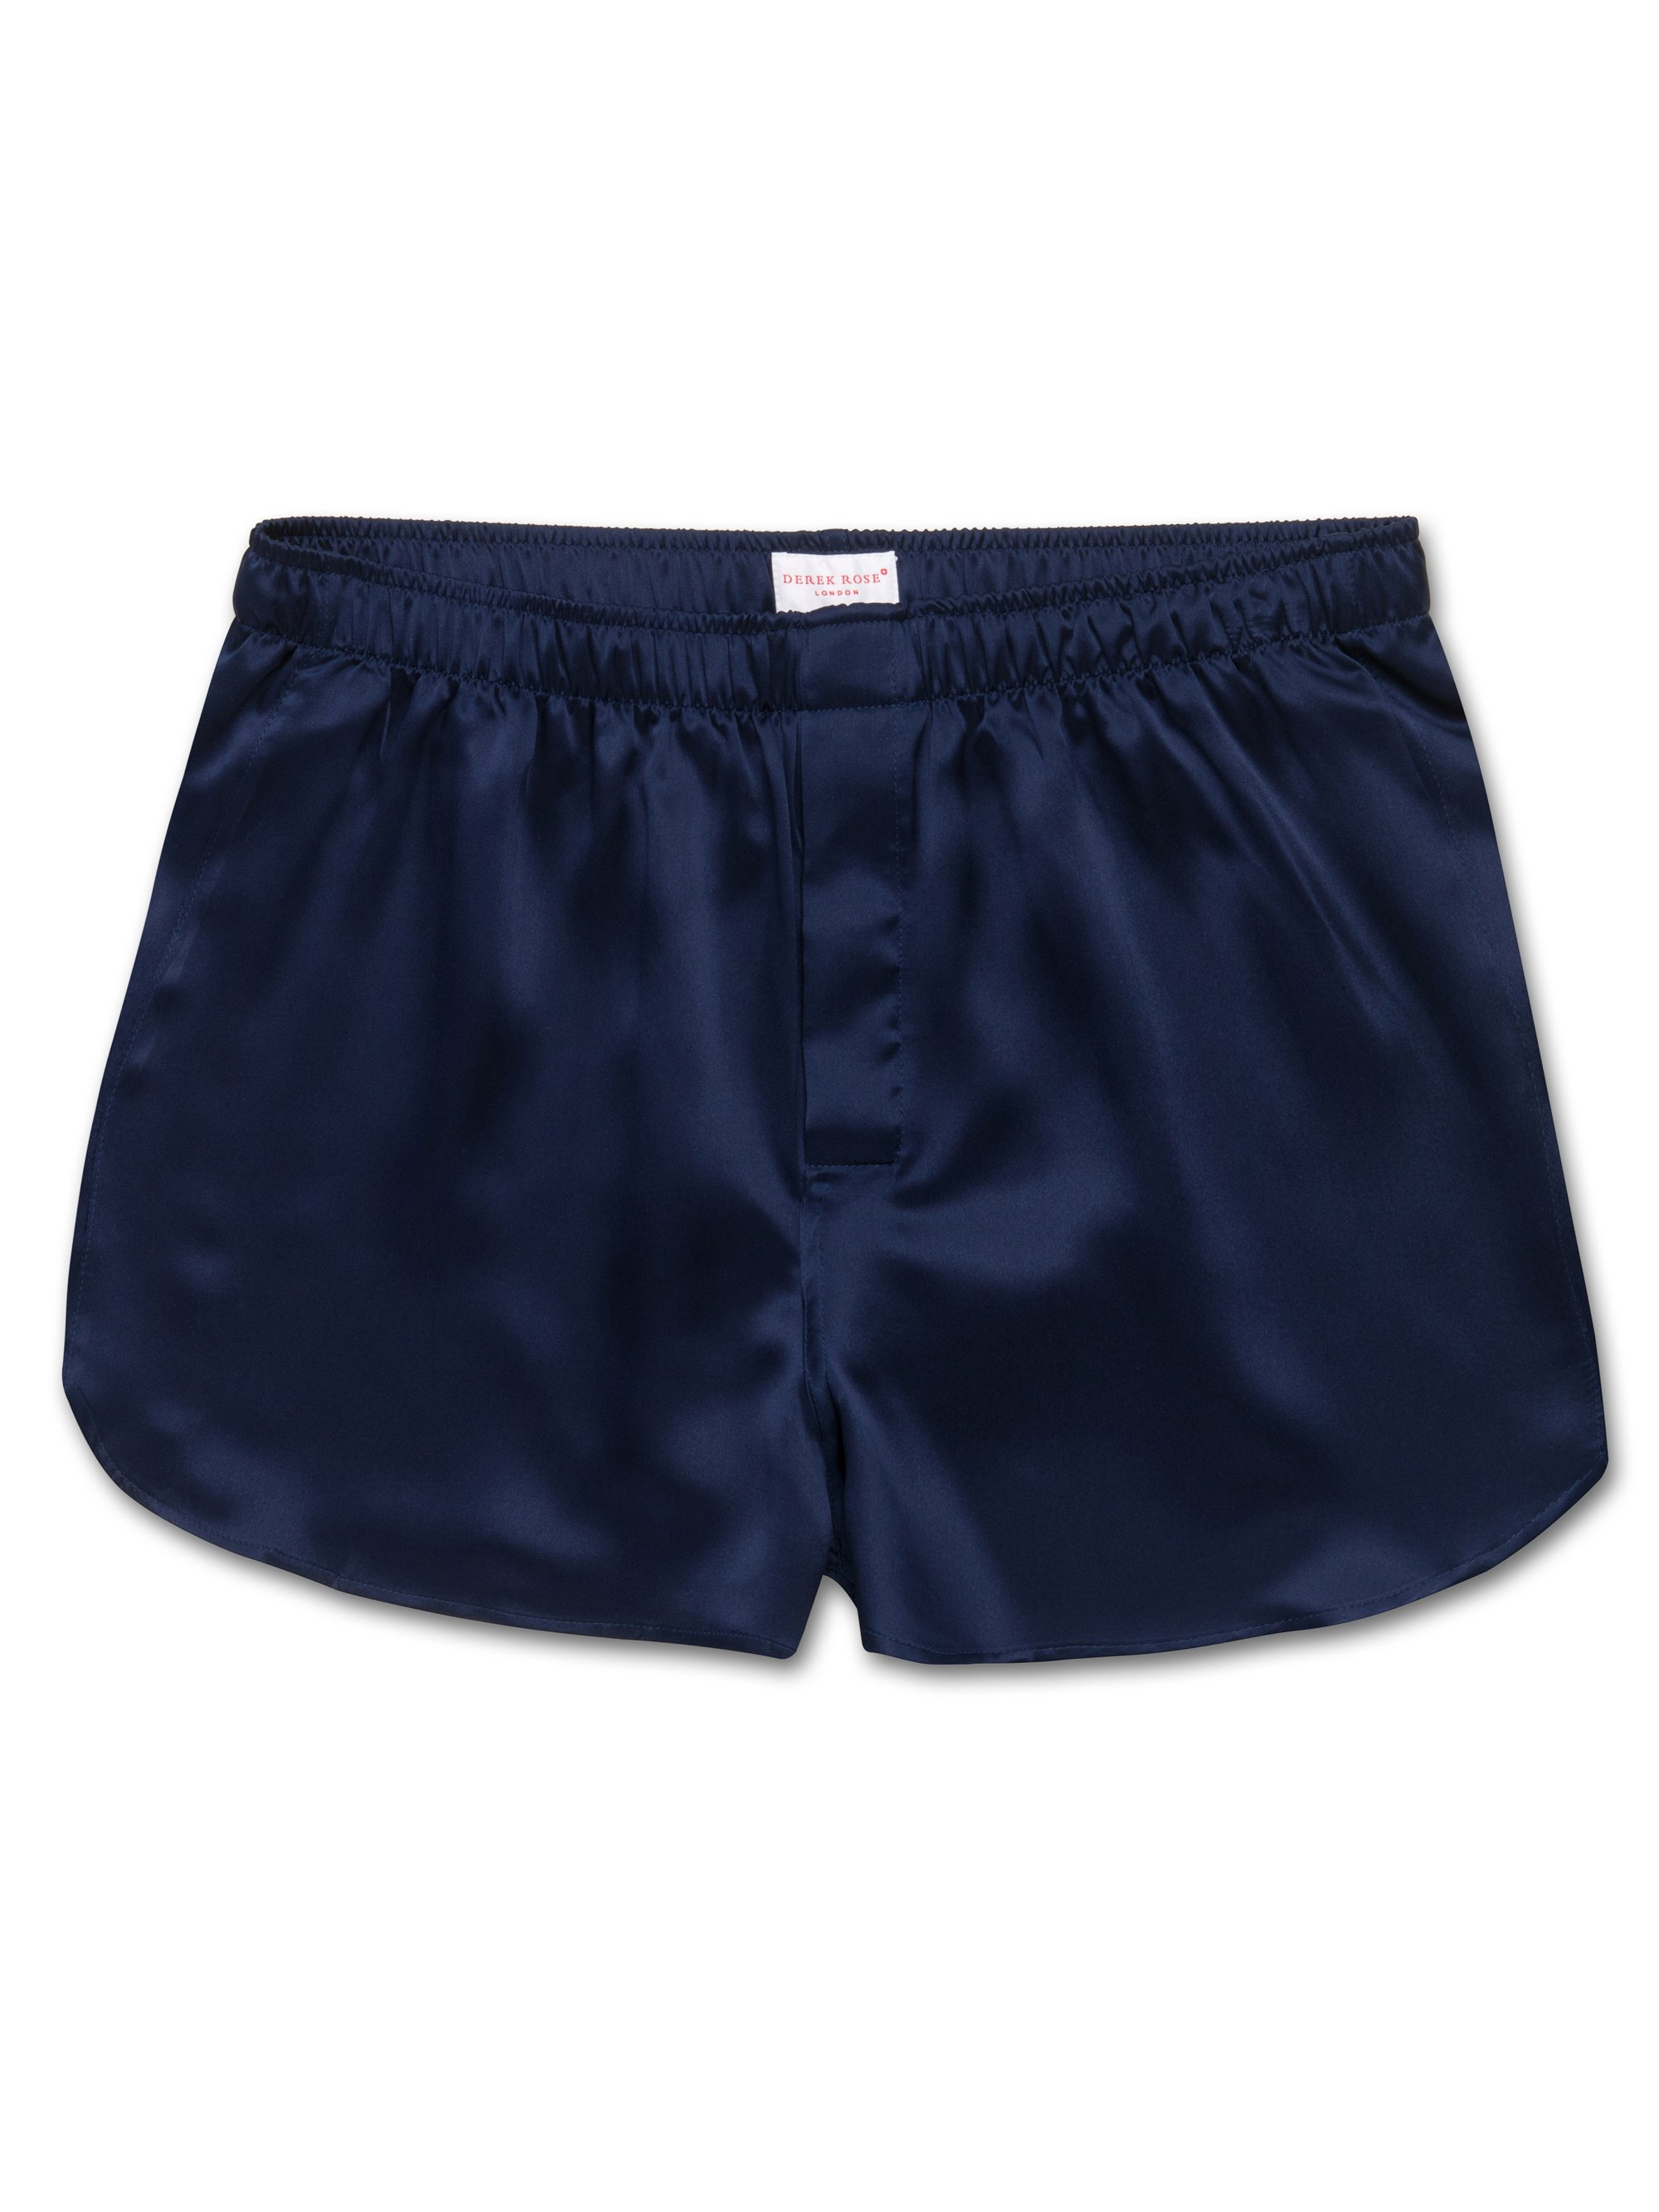 Shop for mens silk boxer shorts online at Target. Free shipping on purchases over $35 and save 5% every day with your Target REDcard.